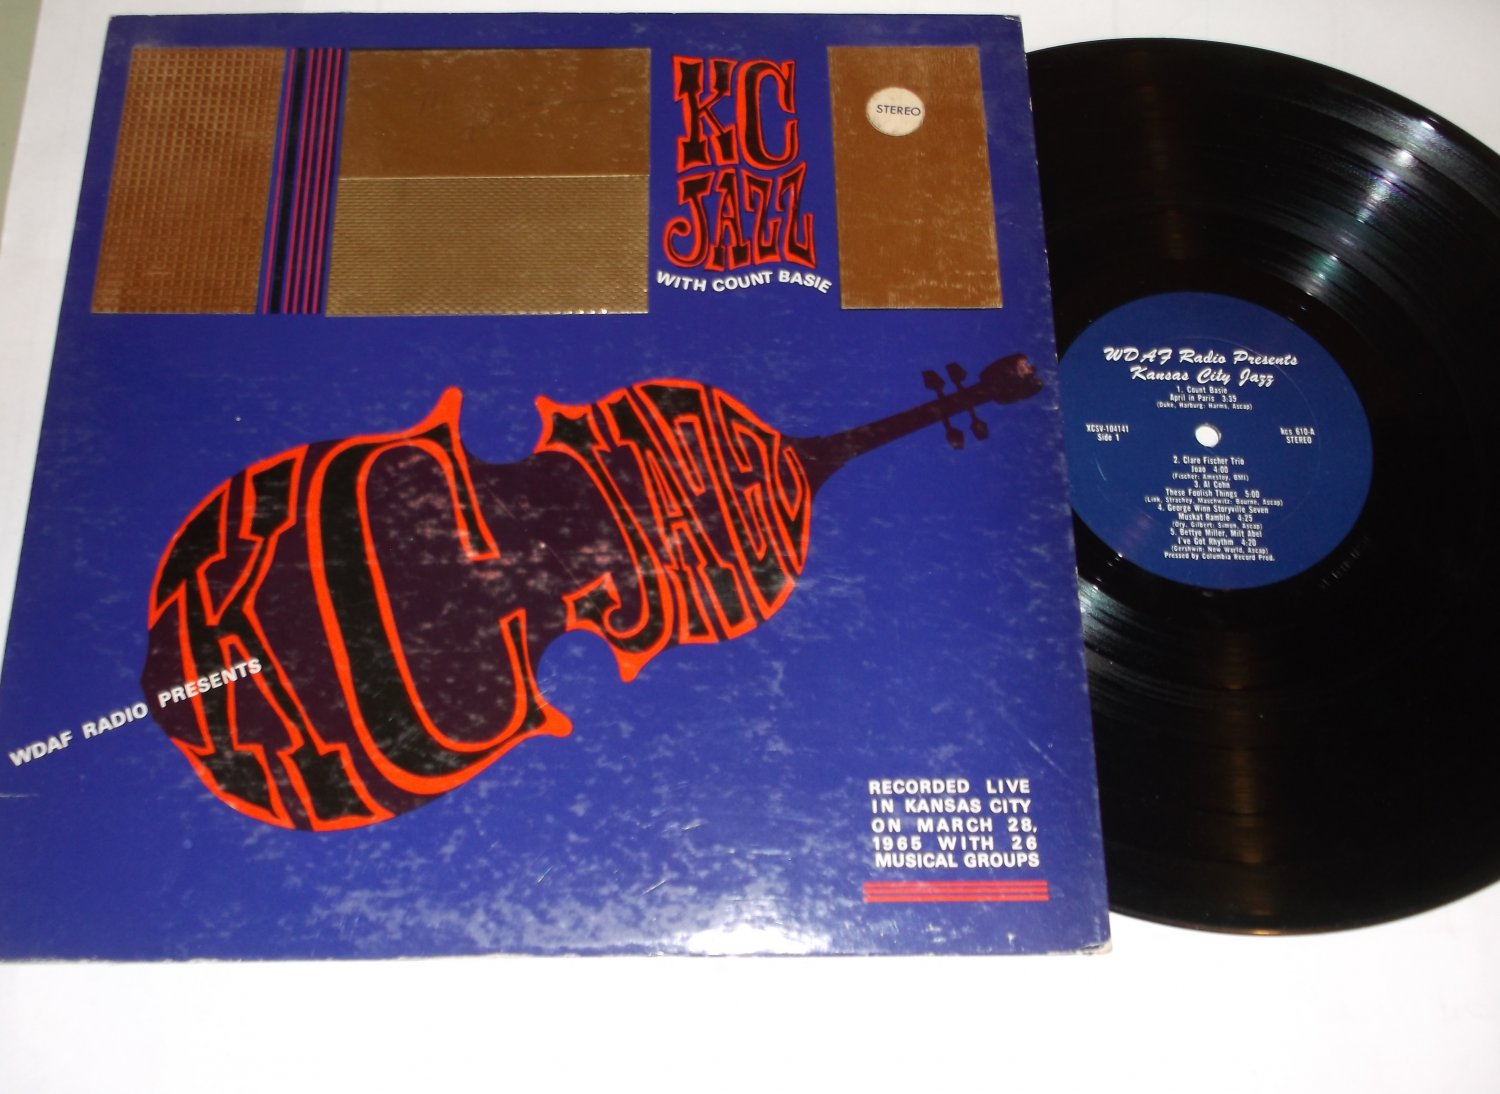 KC Jazz with Count Basie In Kansas City 1965 KDAF Radio Private Label